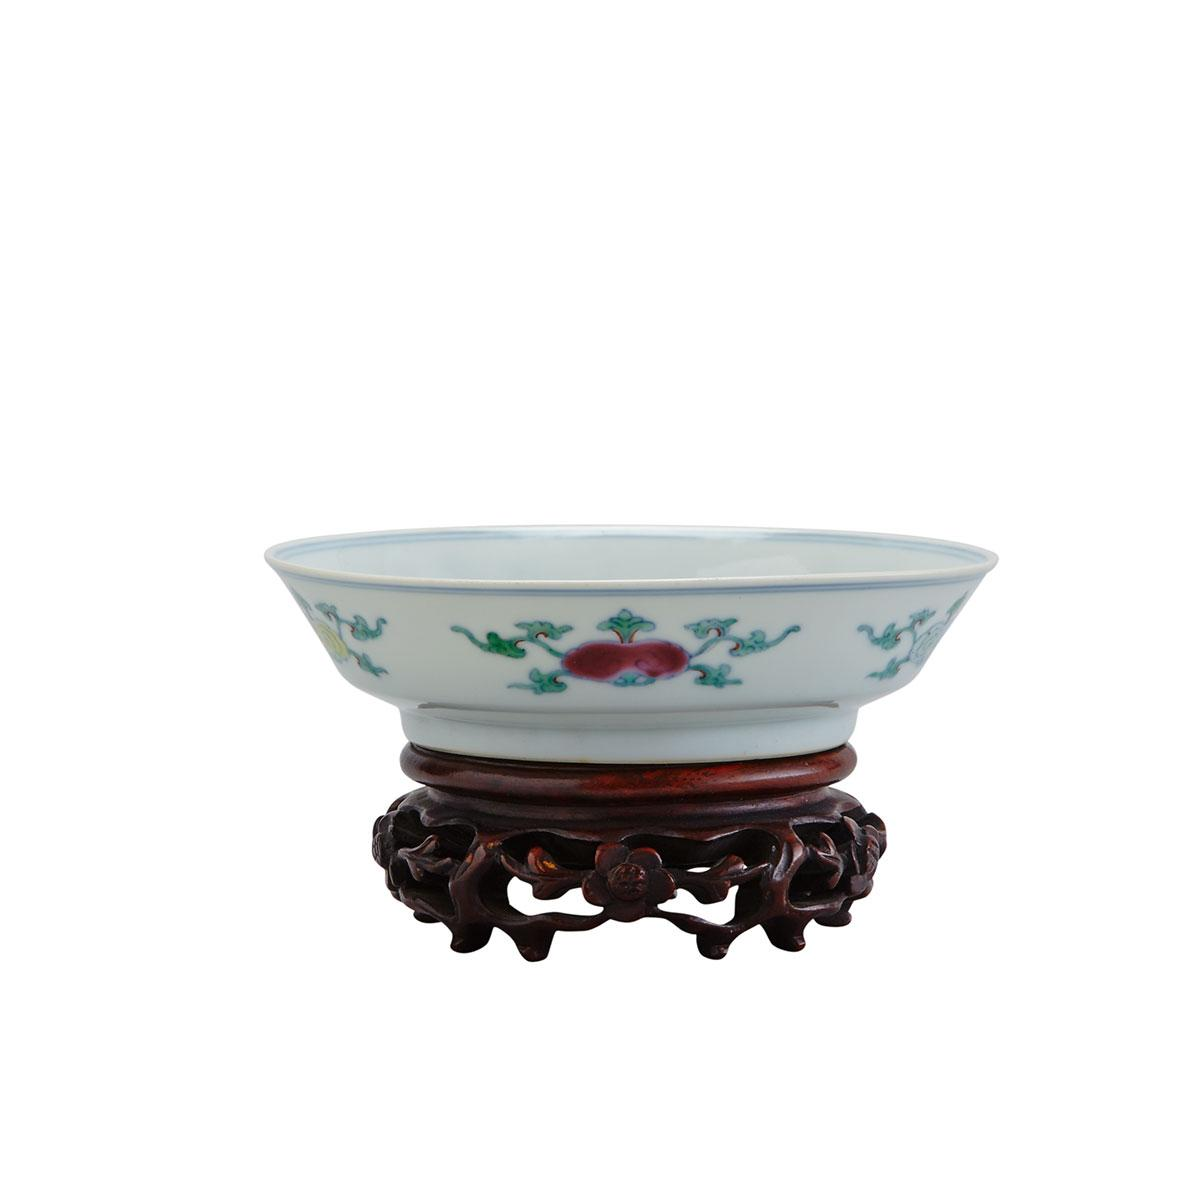 Small Doucai Saucer Dish, Yongzheng Mark